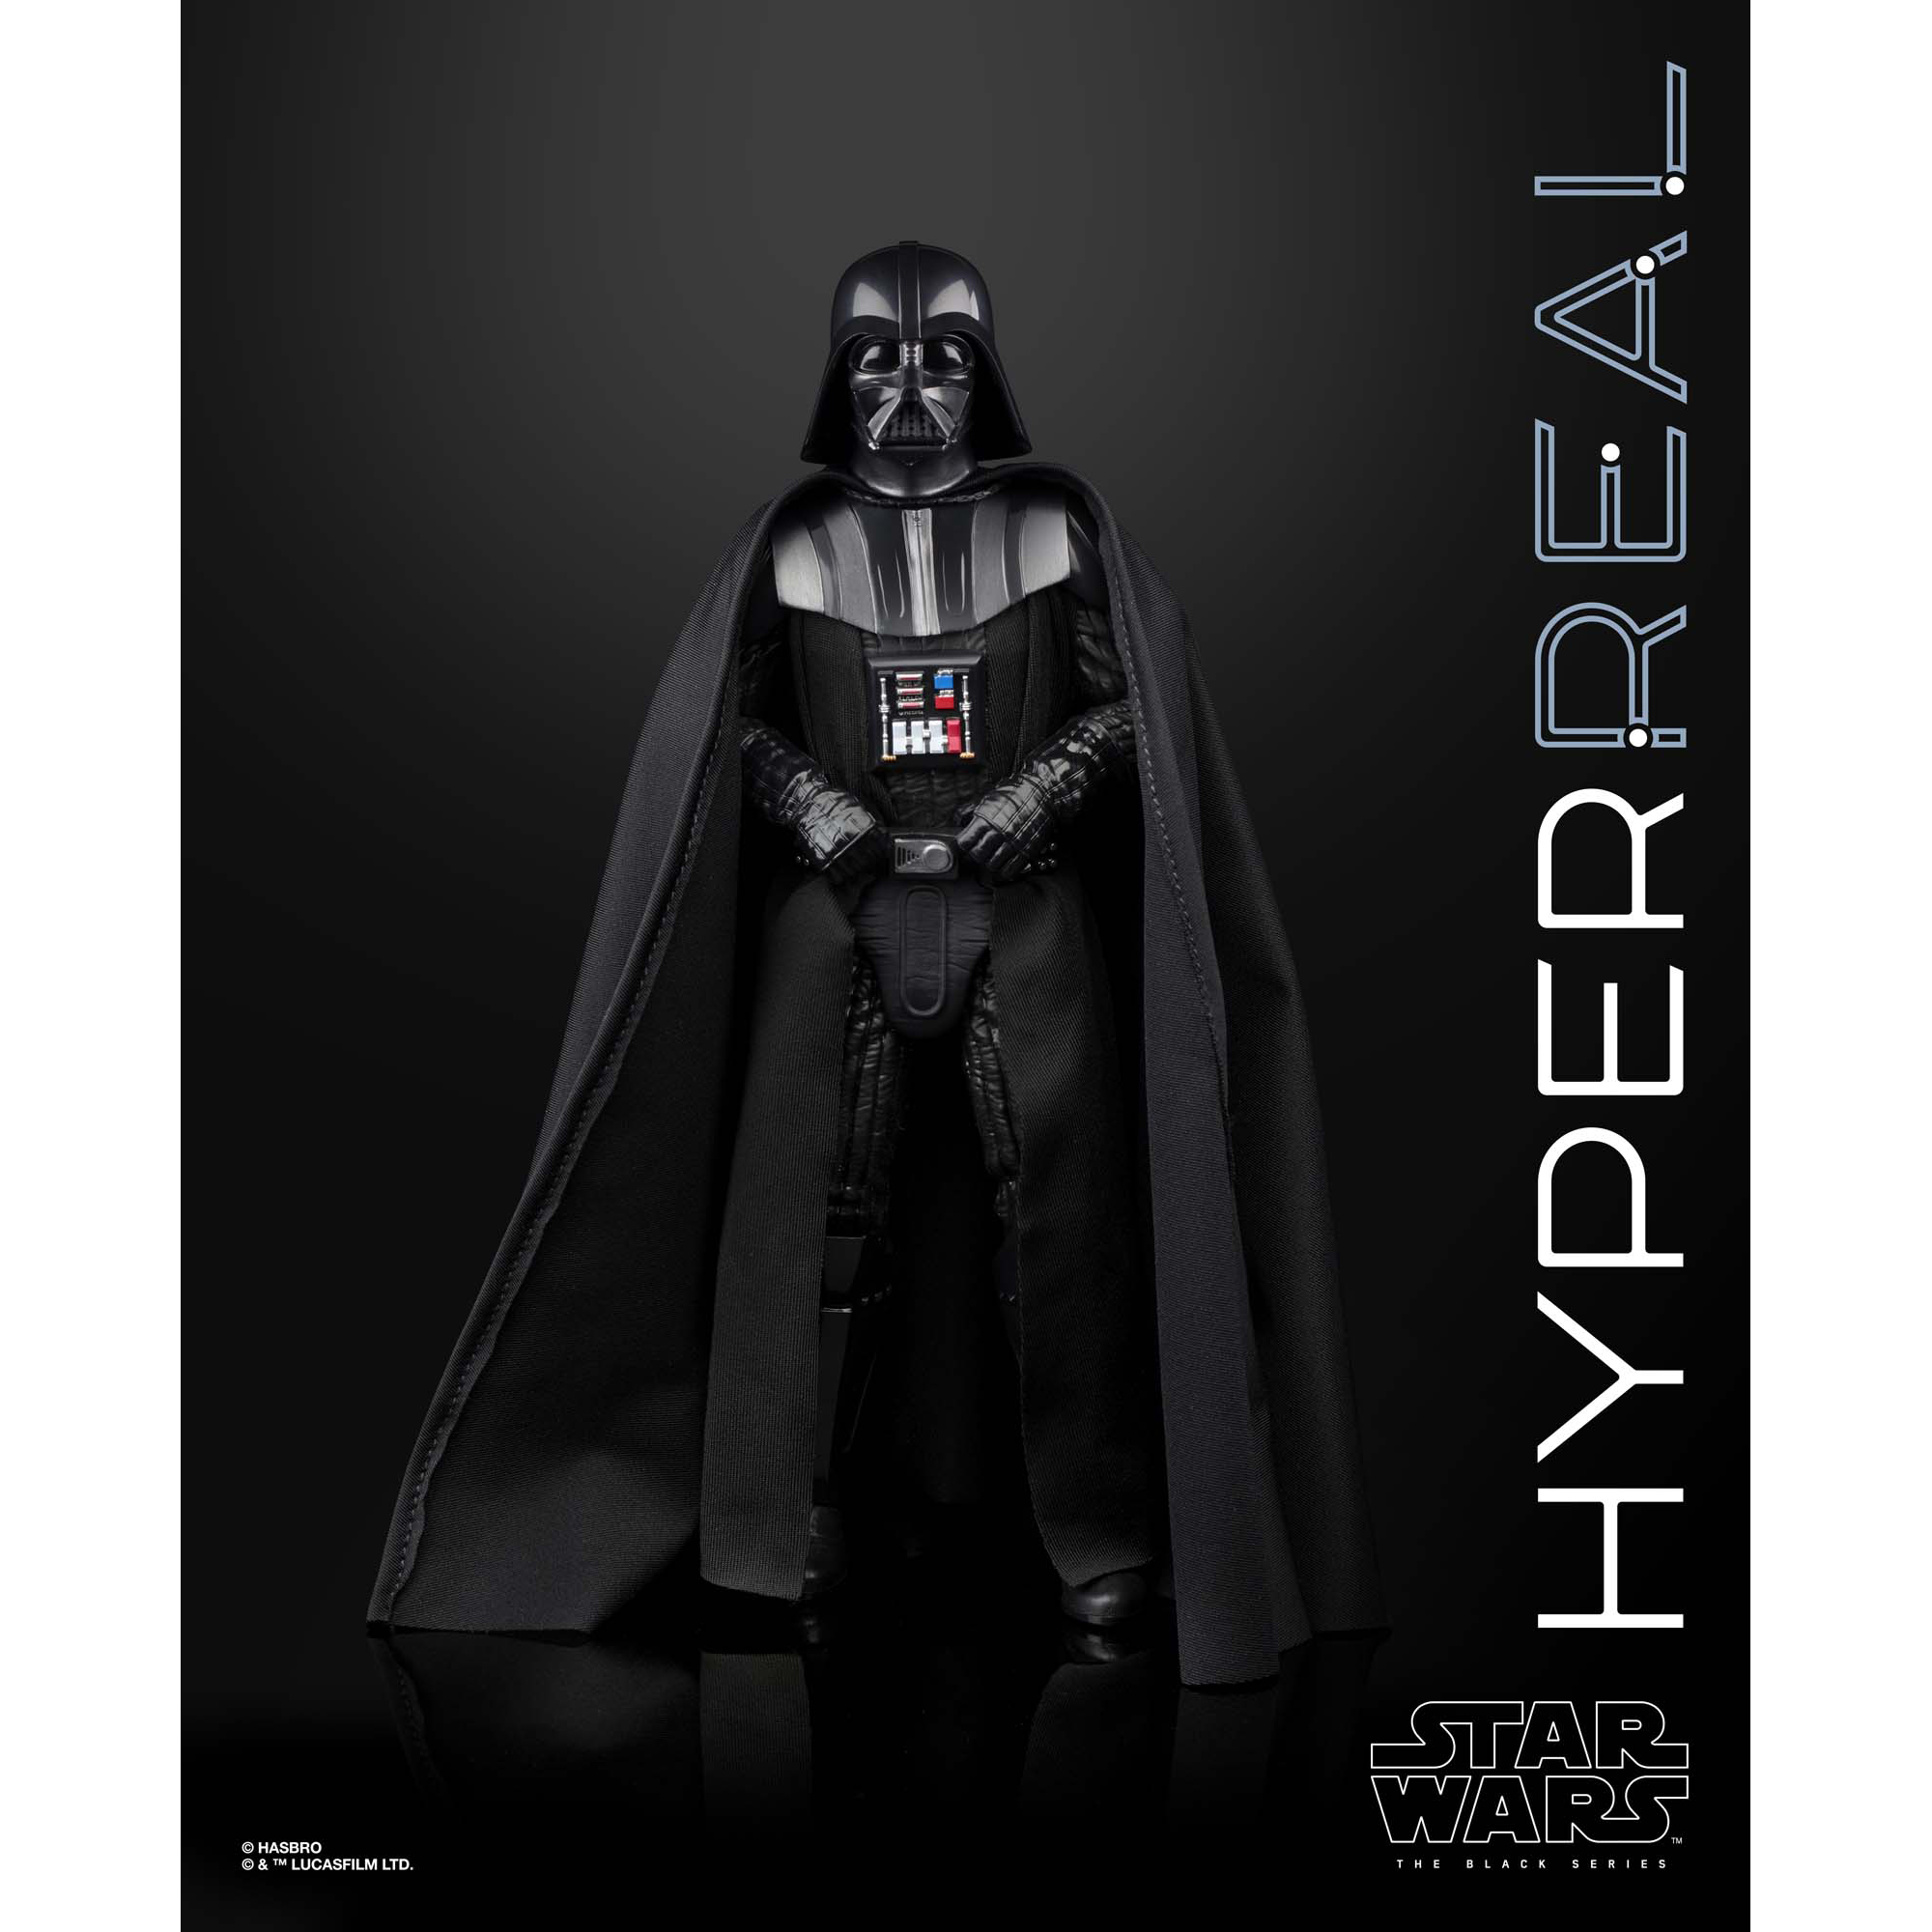 Star Wars The Empire Strikes Back Hyperreal 8 Inch Darth Vader Walmart Com Walmart Com